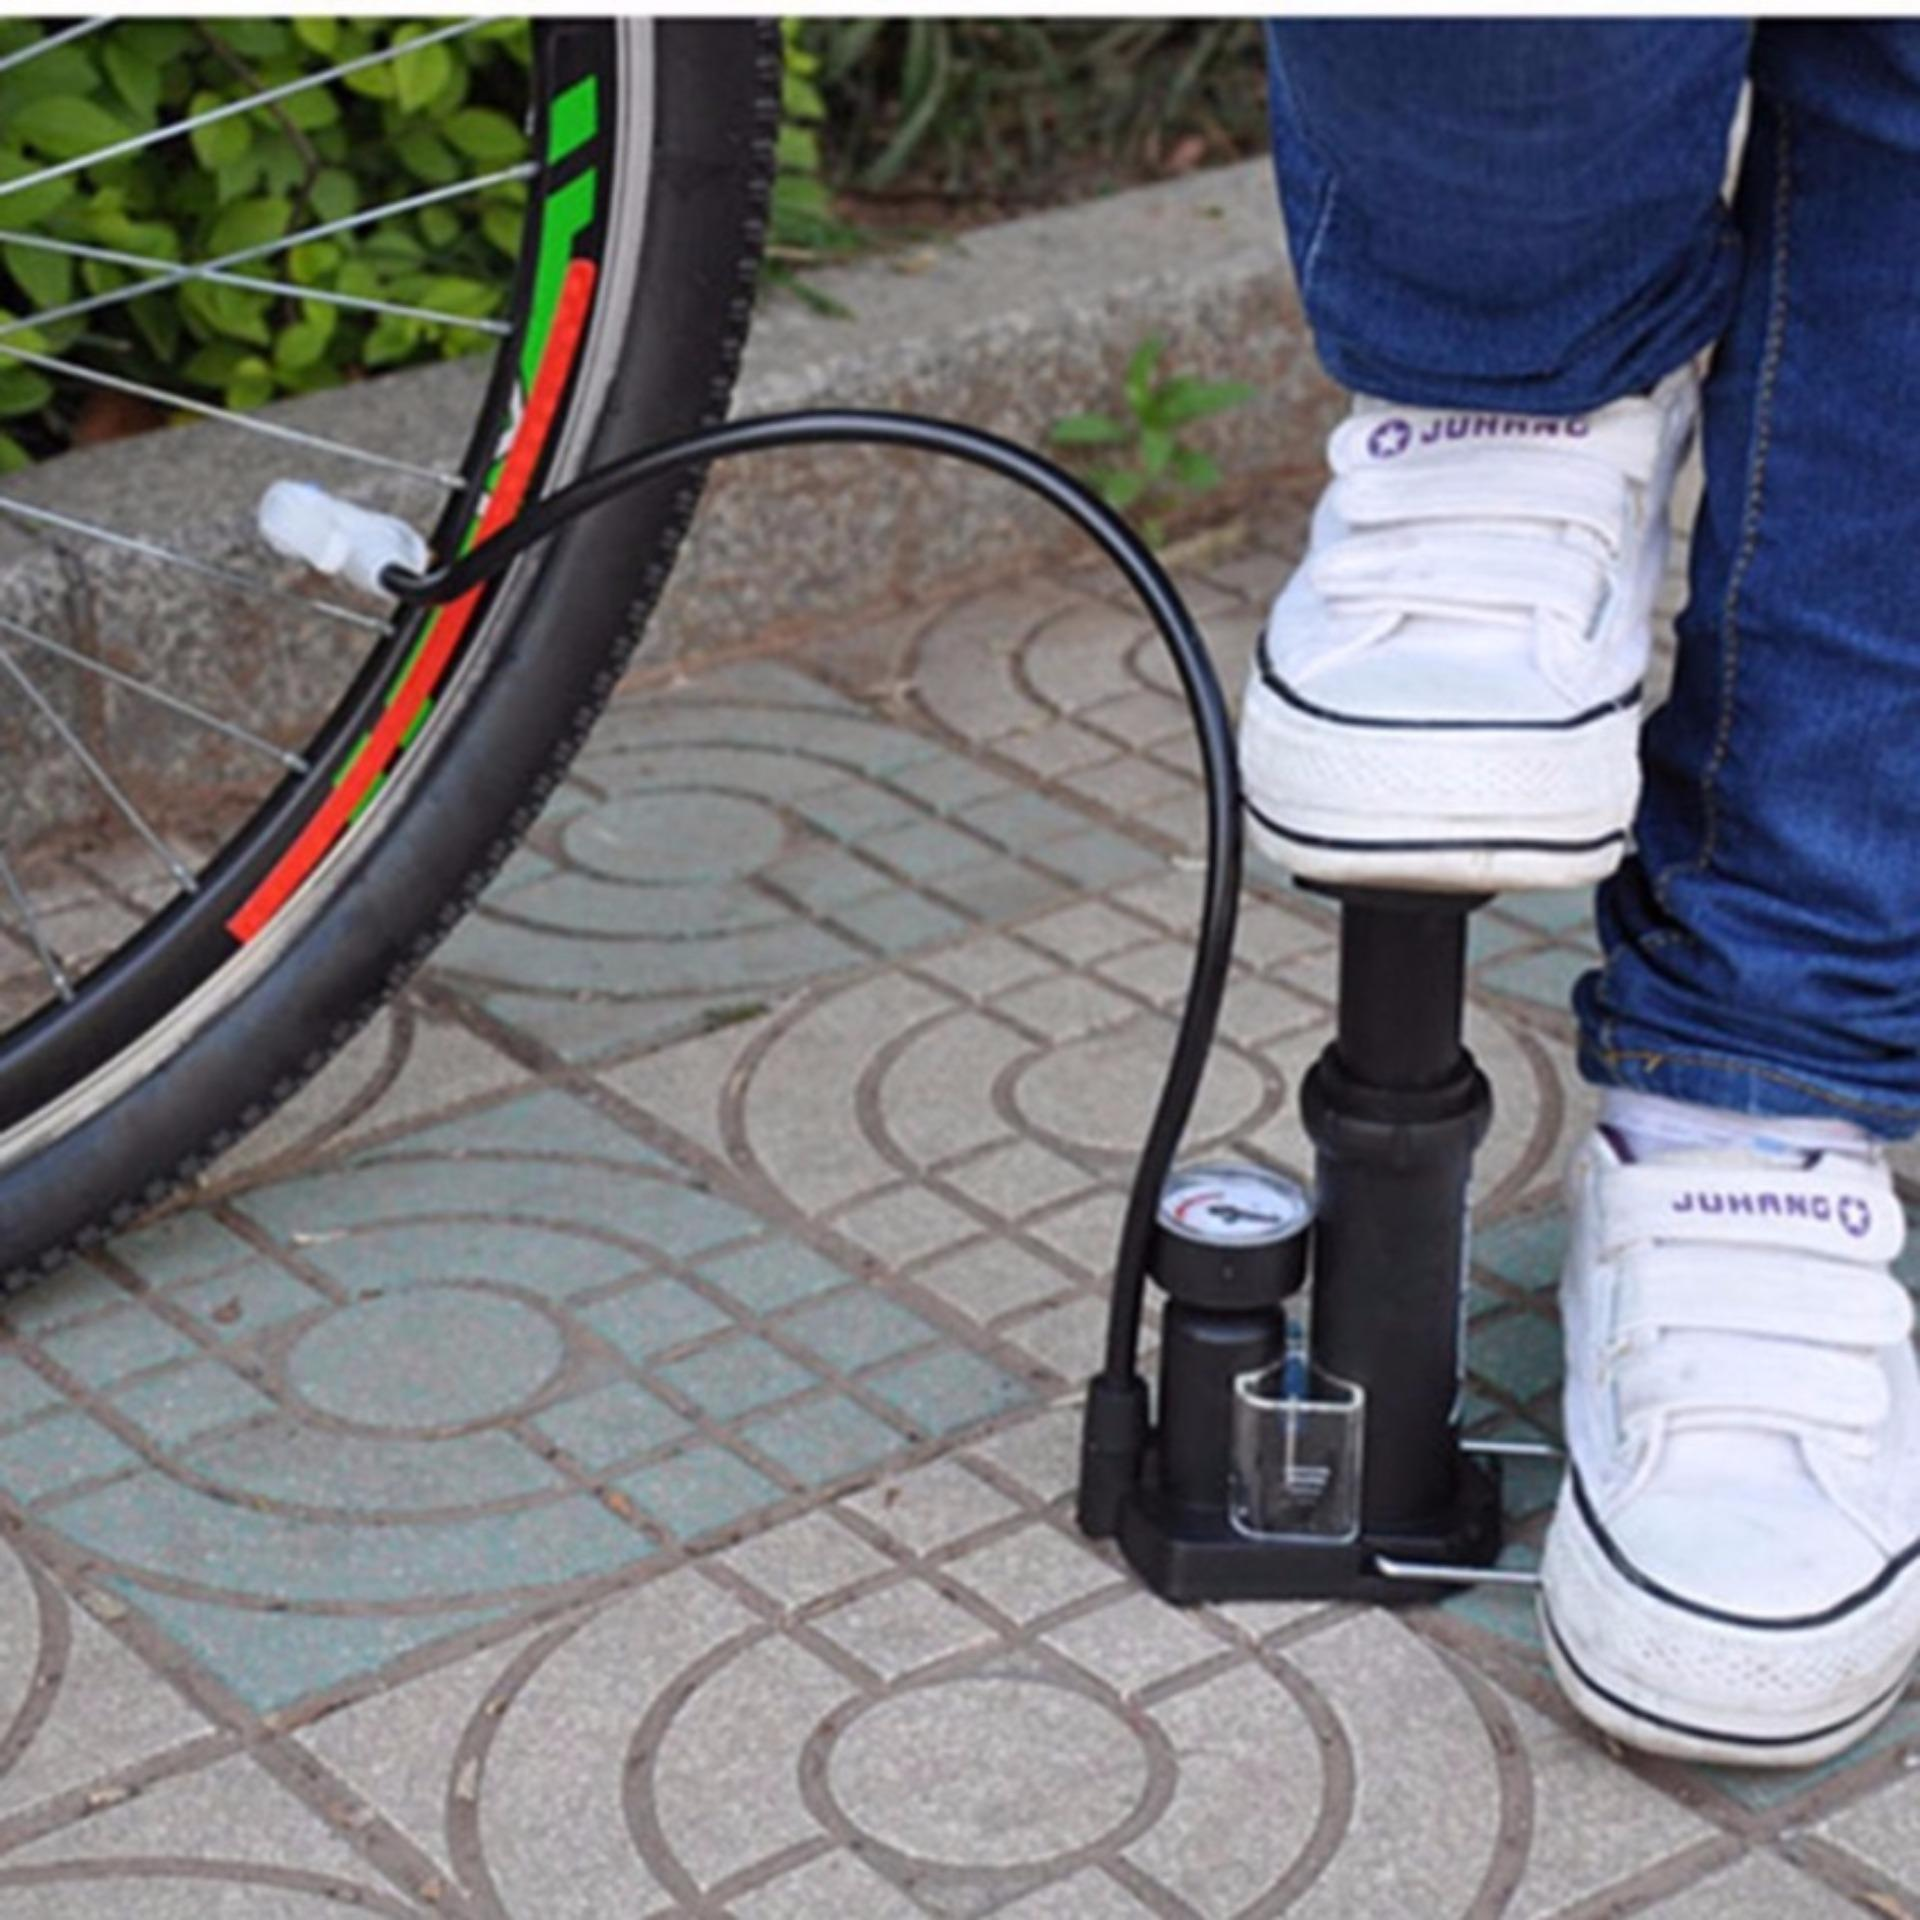 Eigia Pompa Angin Honor High Pressure Portable Bike Sepeda Basket Ball Foot Pump s4951 - Hitam